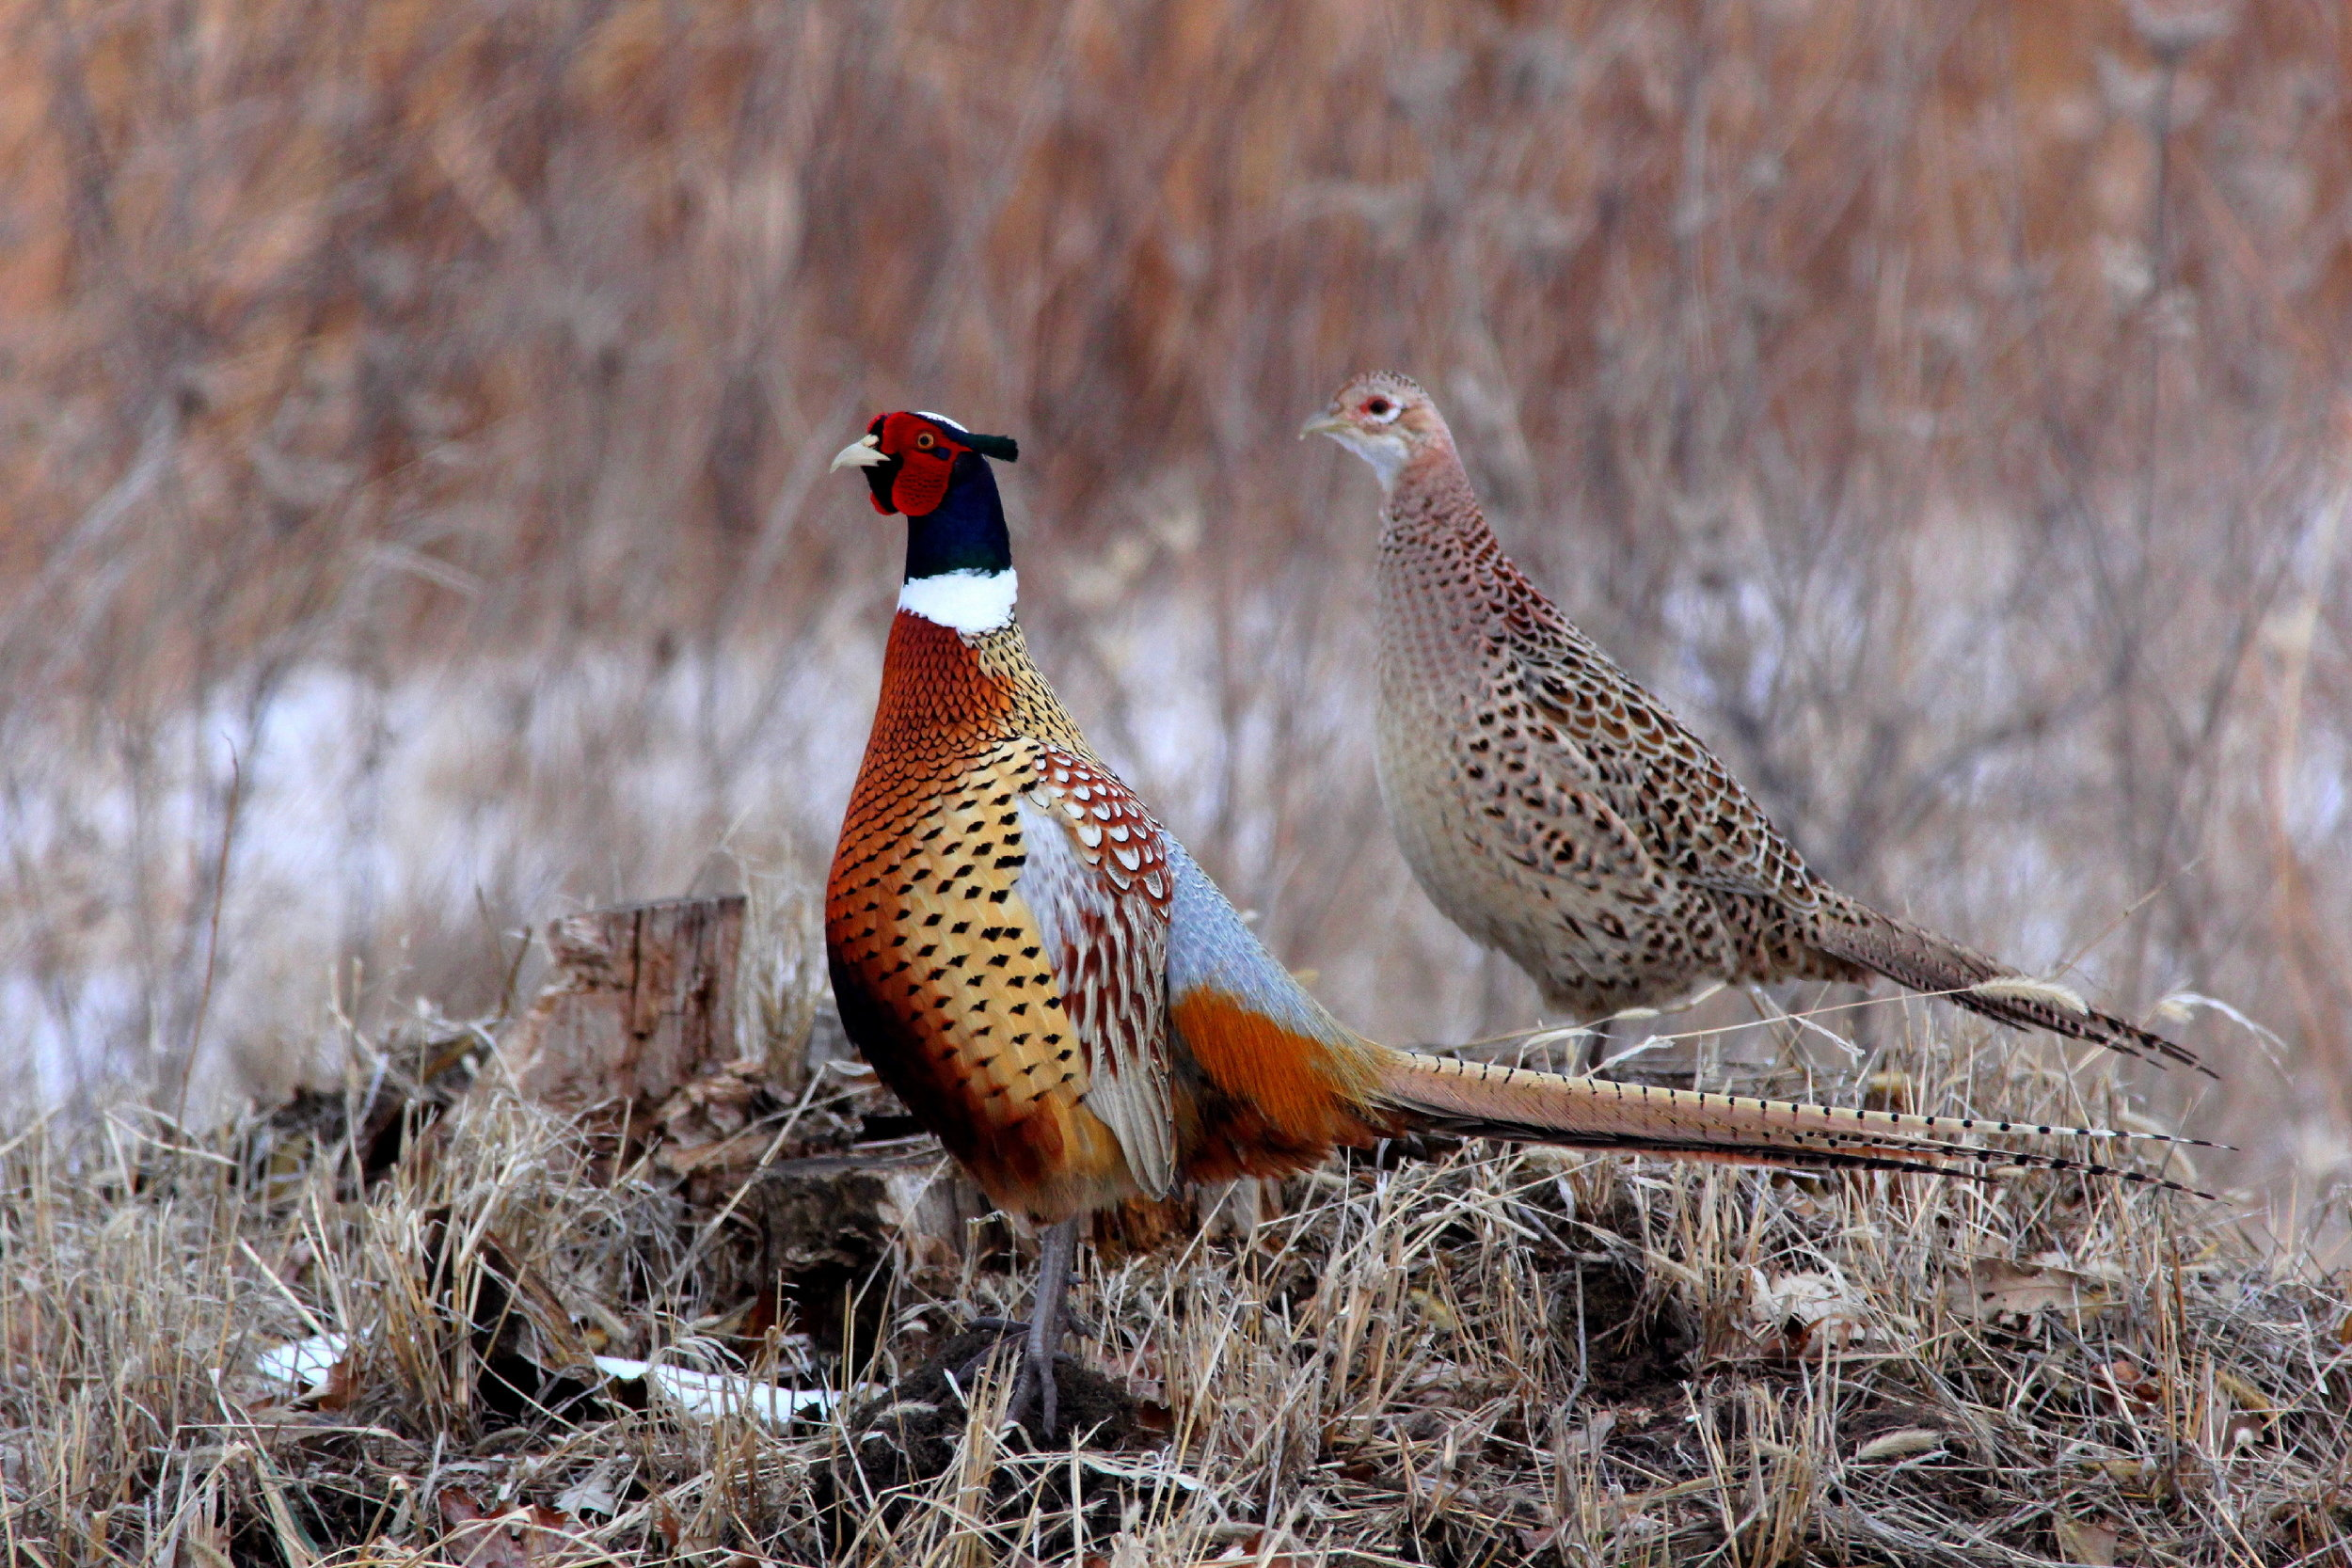 """- Ring-necked Pheasant (Phasianus colchicus)Ring-necked Pheasants live in grassy areas such as grasslands, prairies, fields, and meadows. Their diet includes insects, seeds, and other plant matter. They have a wingspan of 22-33.9 in. and weigh 1.1-6.6 lbs. Ring-necked Pheasants are native to Asia, but were brought to other continents as game birds. Their call is that of multiple """"caw-caw"""" phrases. They are NOT protected on the US Migratory Bird list.Photo Credits: Jerry Reed/WisconsinDNR"""